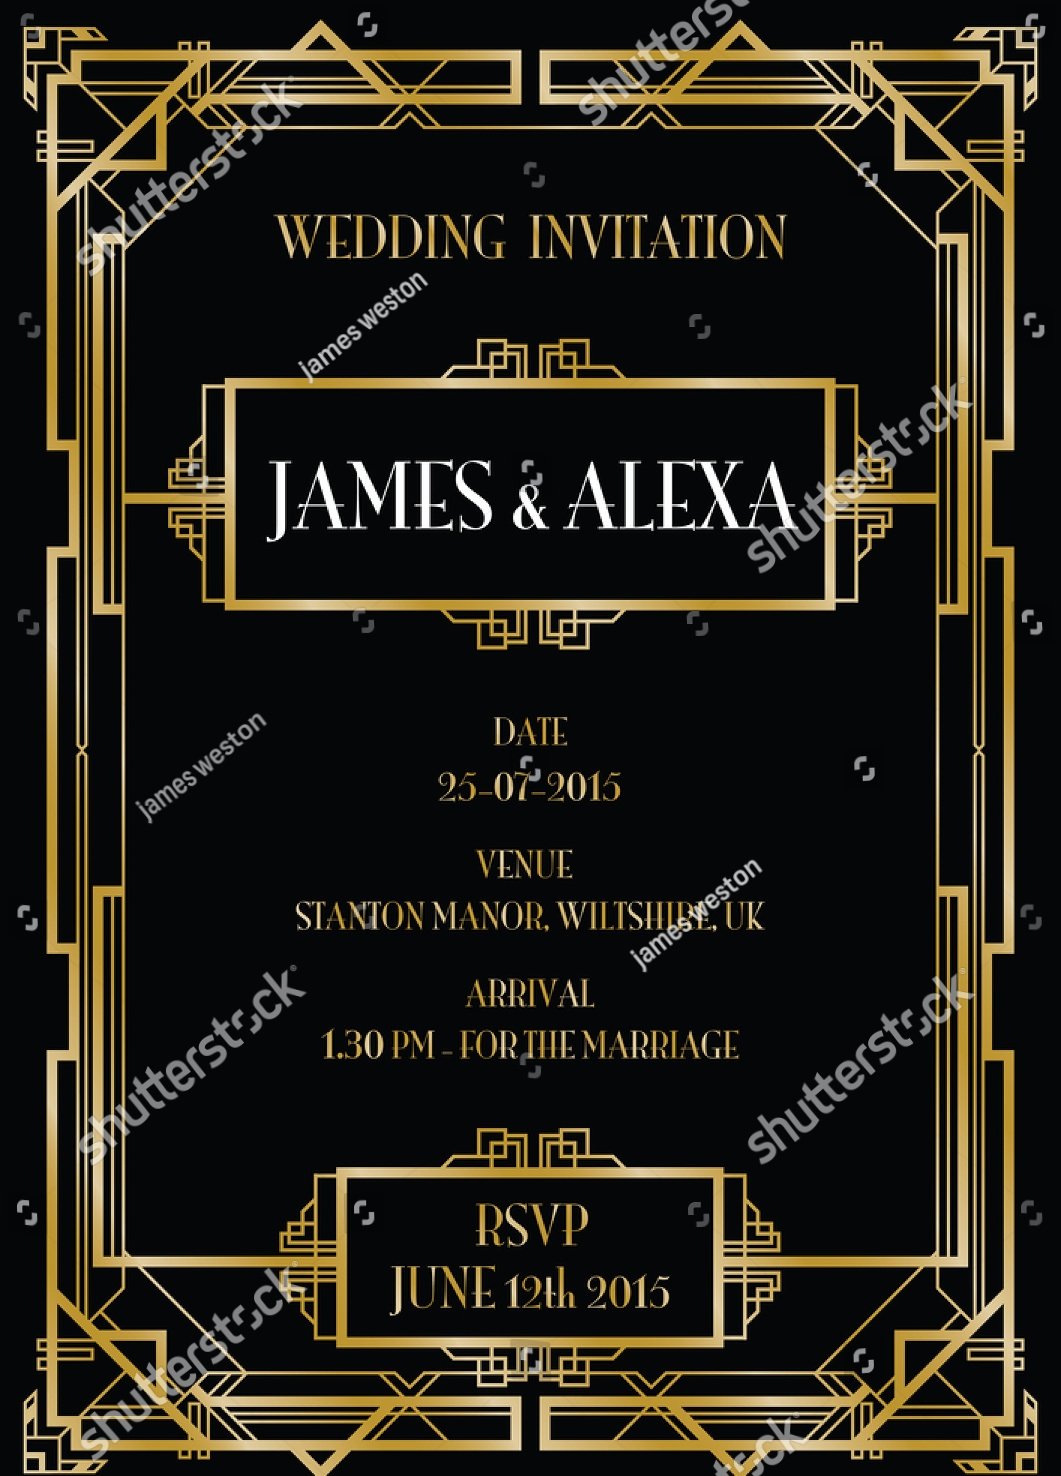 15 Art Deco Wedding Invitation Designs and Examples PSD AI